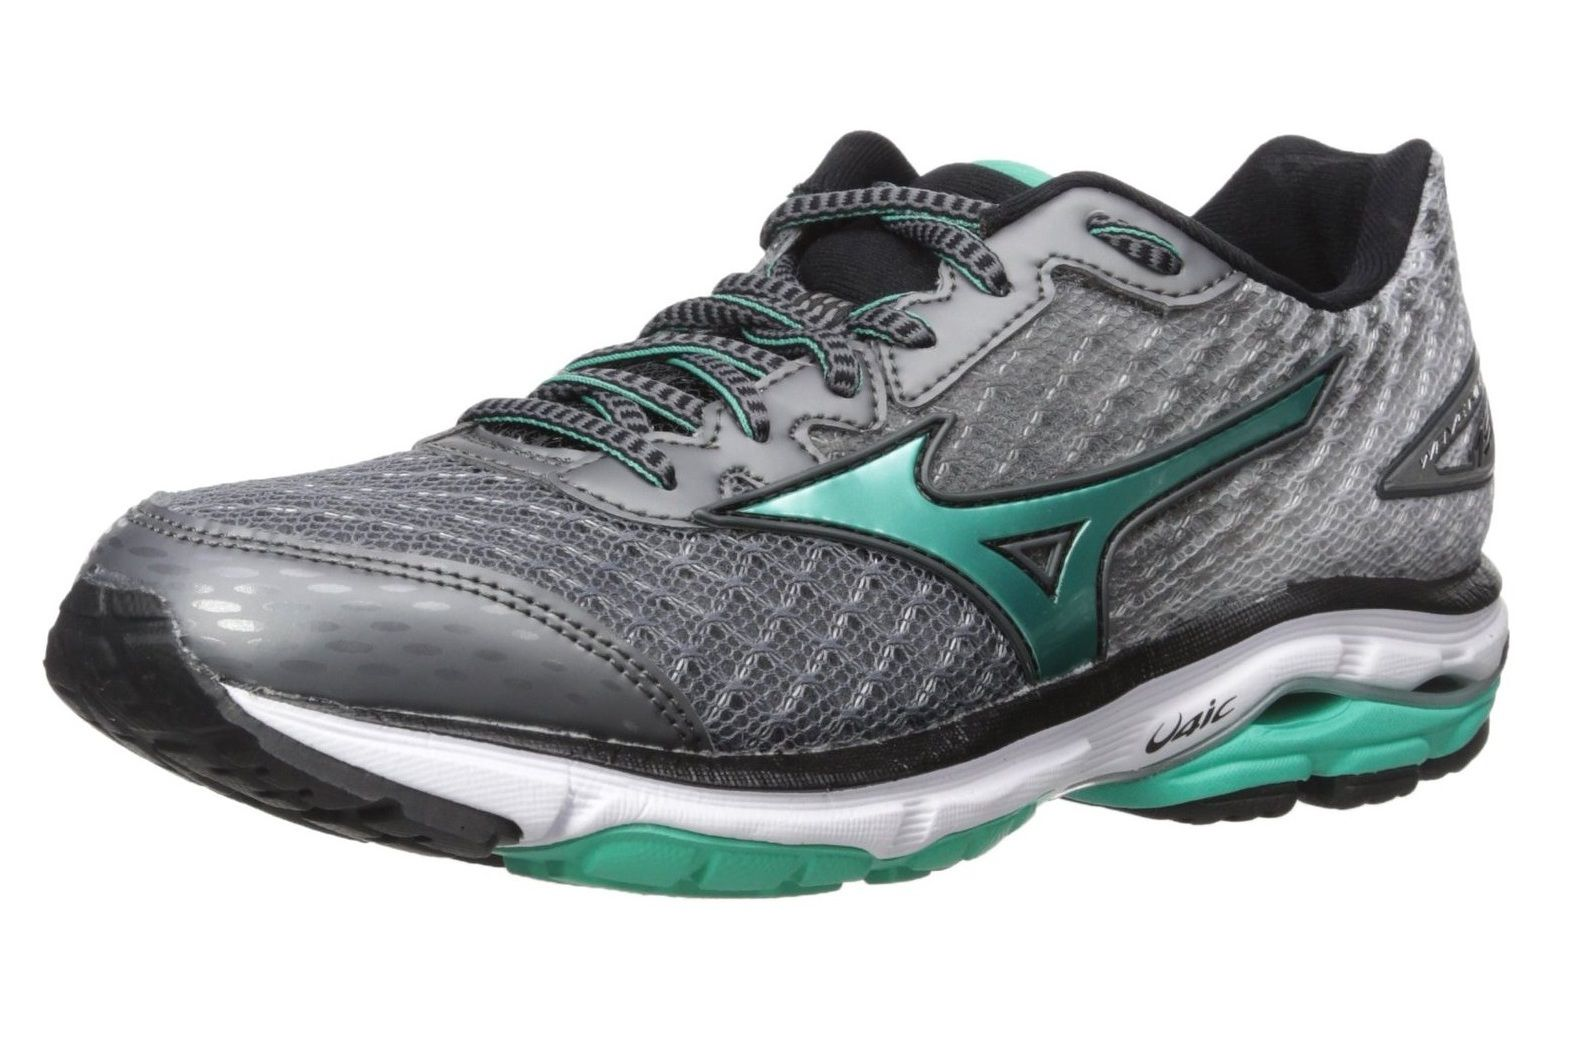 c55cb4020a883f The 9 Best Cushioned Shoes for Walkers of 2019